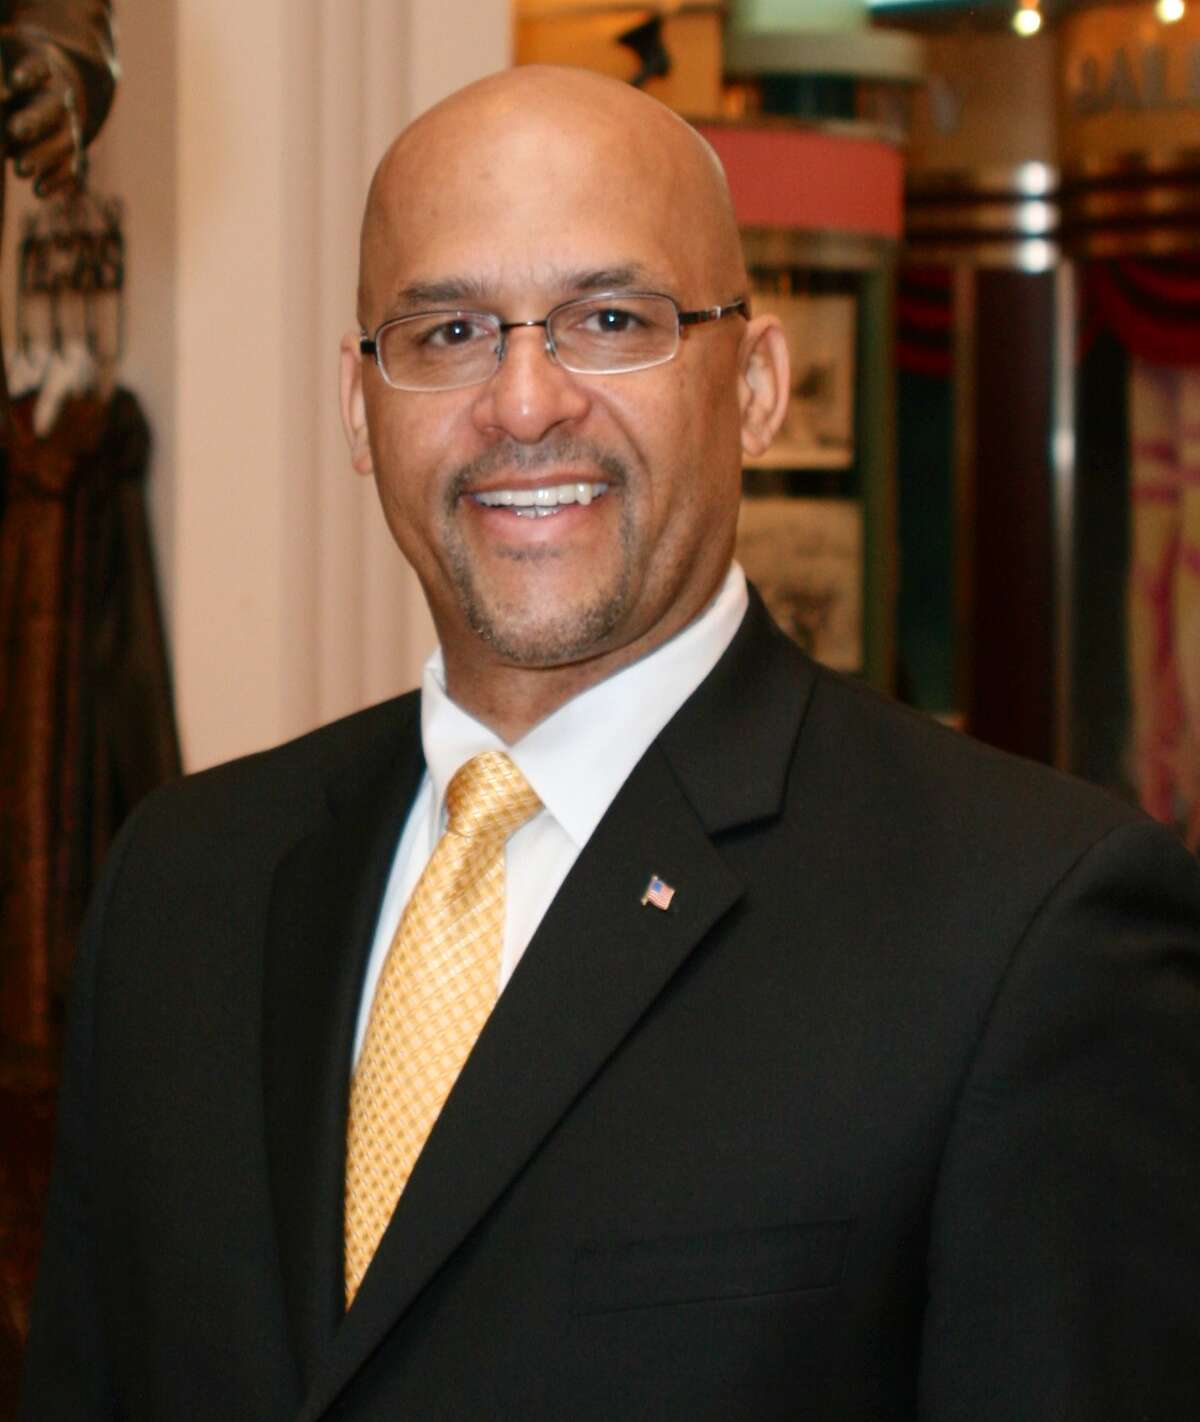 Trebor Gordon, candidate for District 2 at-large seat on the Houston City Council.